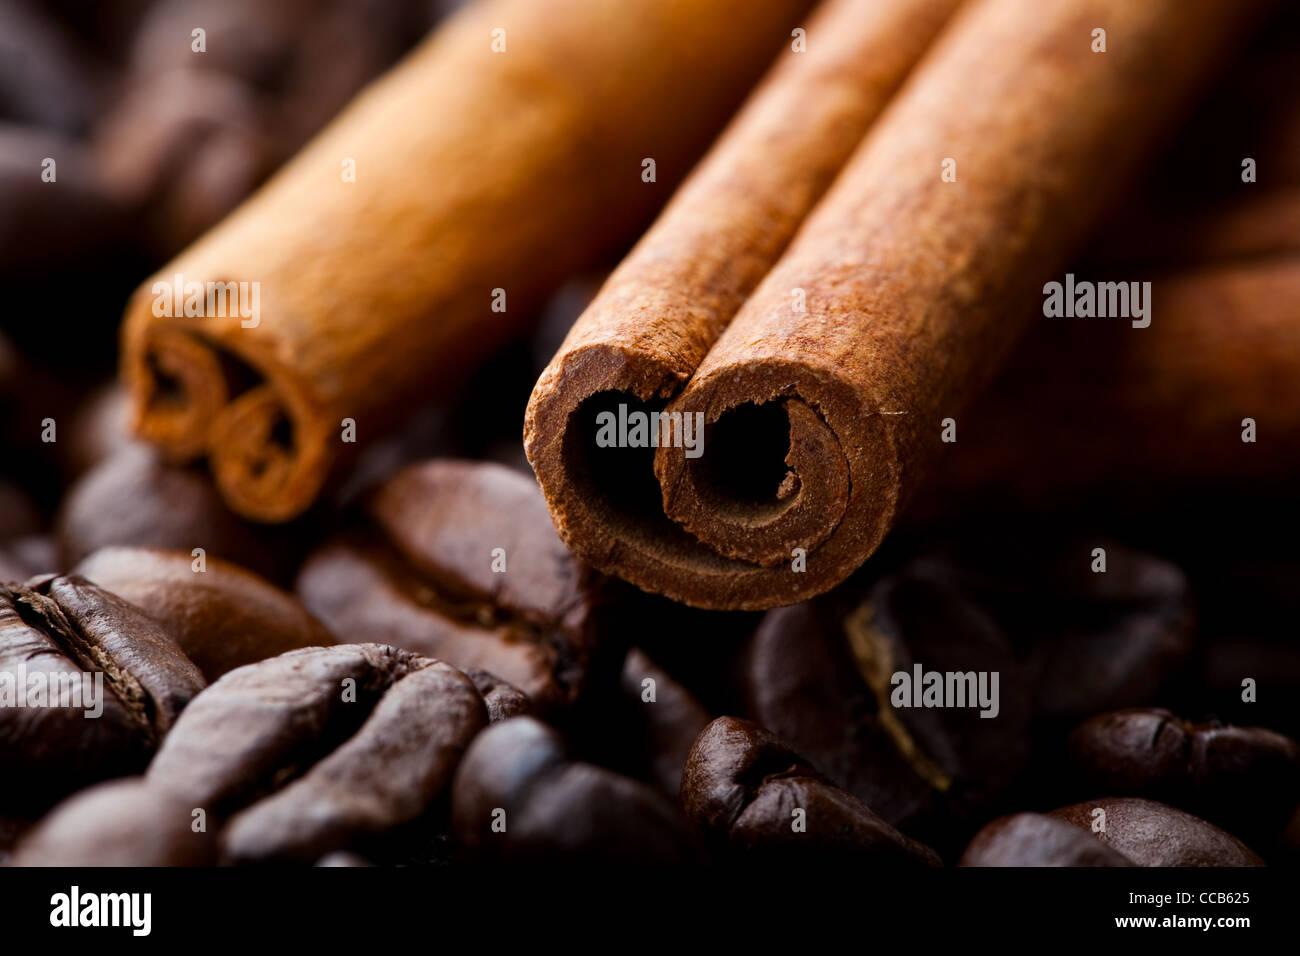 Close-up of cinnamon sticks and roasted coffee beans - Stock Image